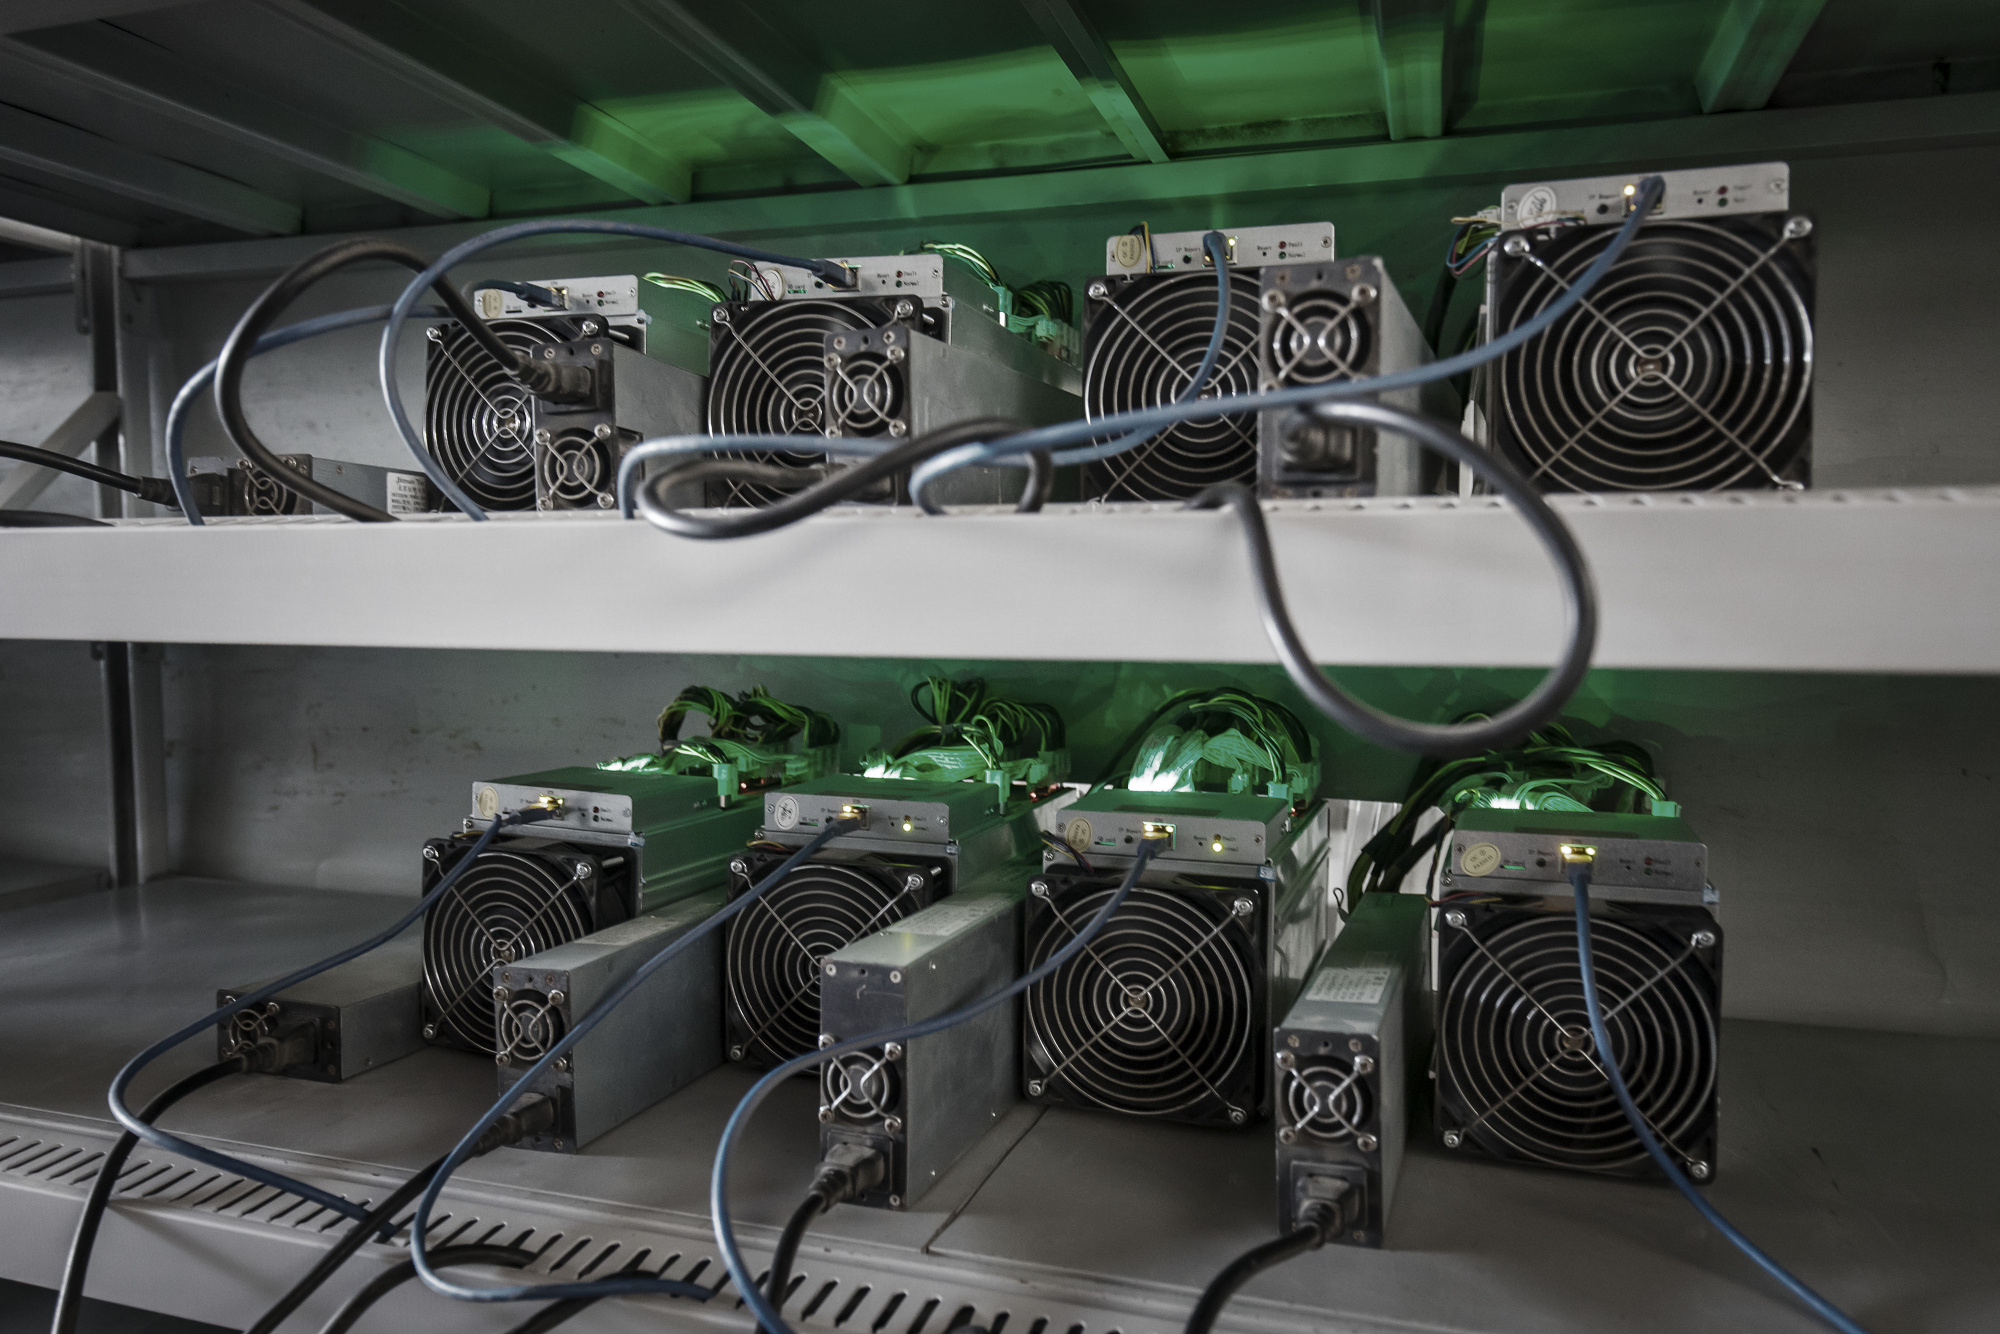 How China's Stifling Bitcoin and Cryptocurrencies: QuickTake Q&A